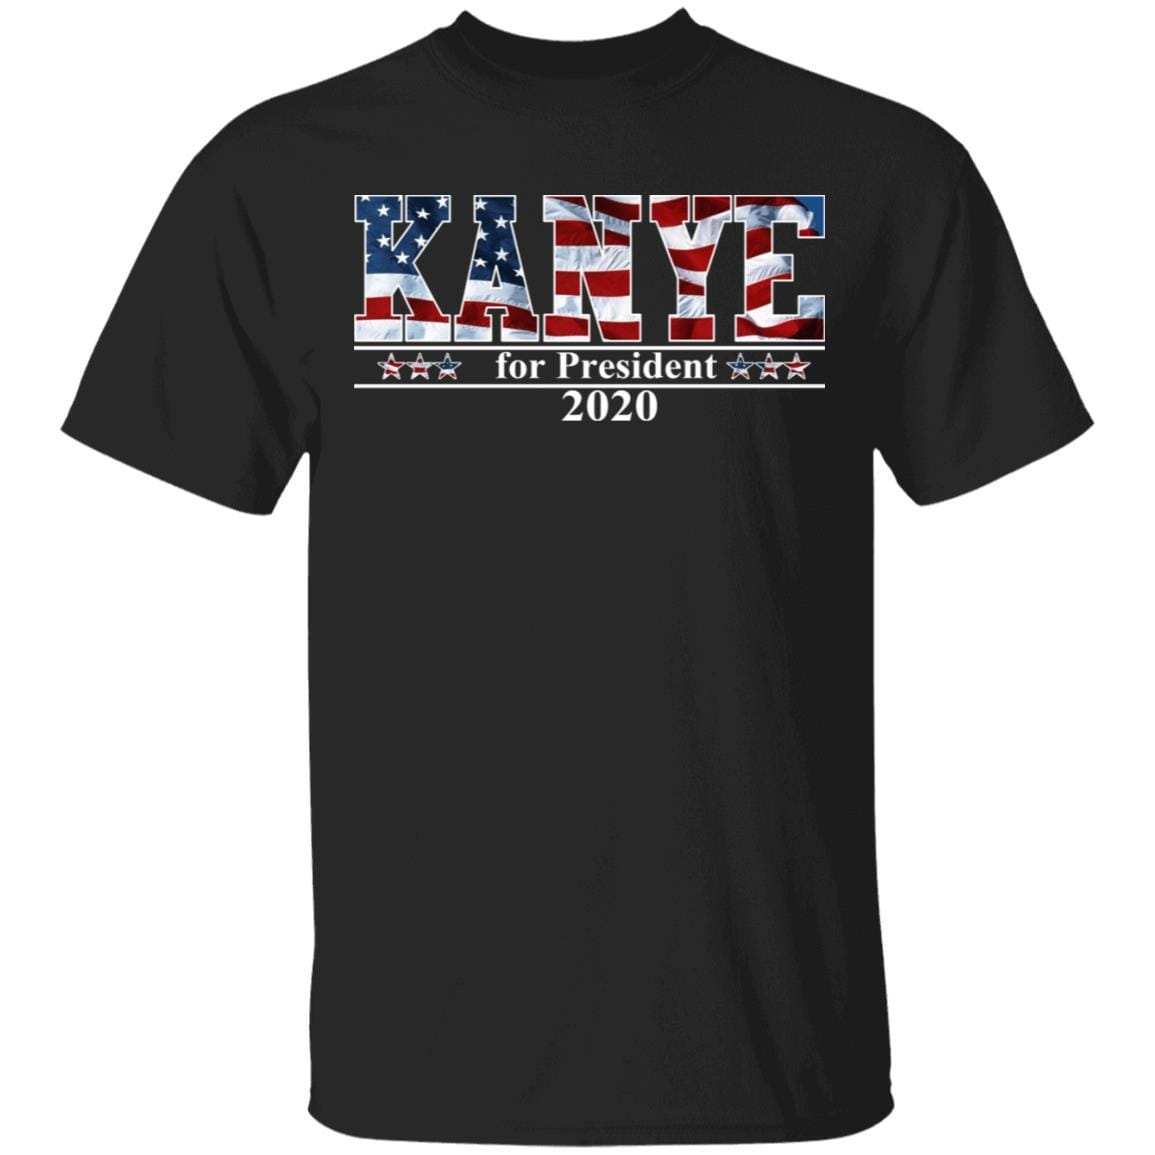 Kanye West for President 2020 T-Shirts, Hoodies 1049-9953-87283561-48144 - Tee Ript